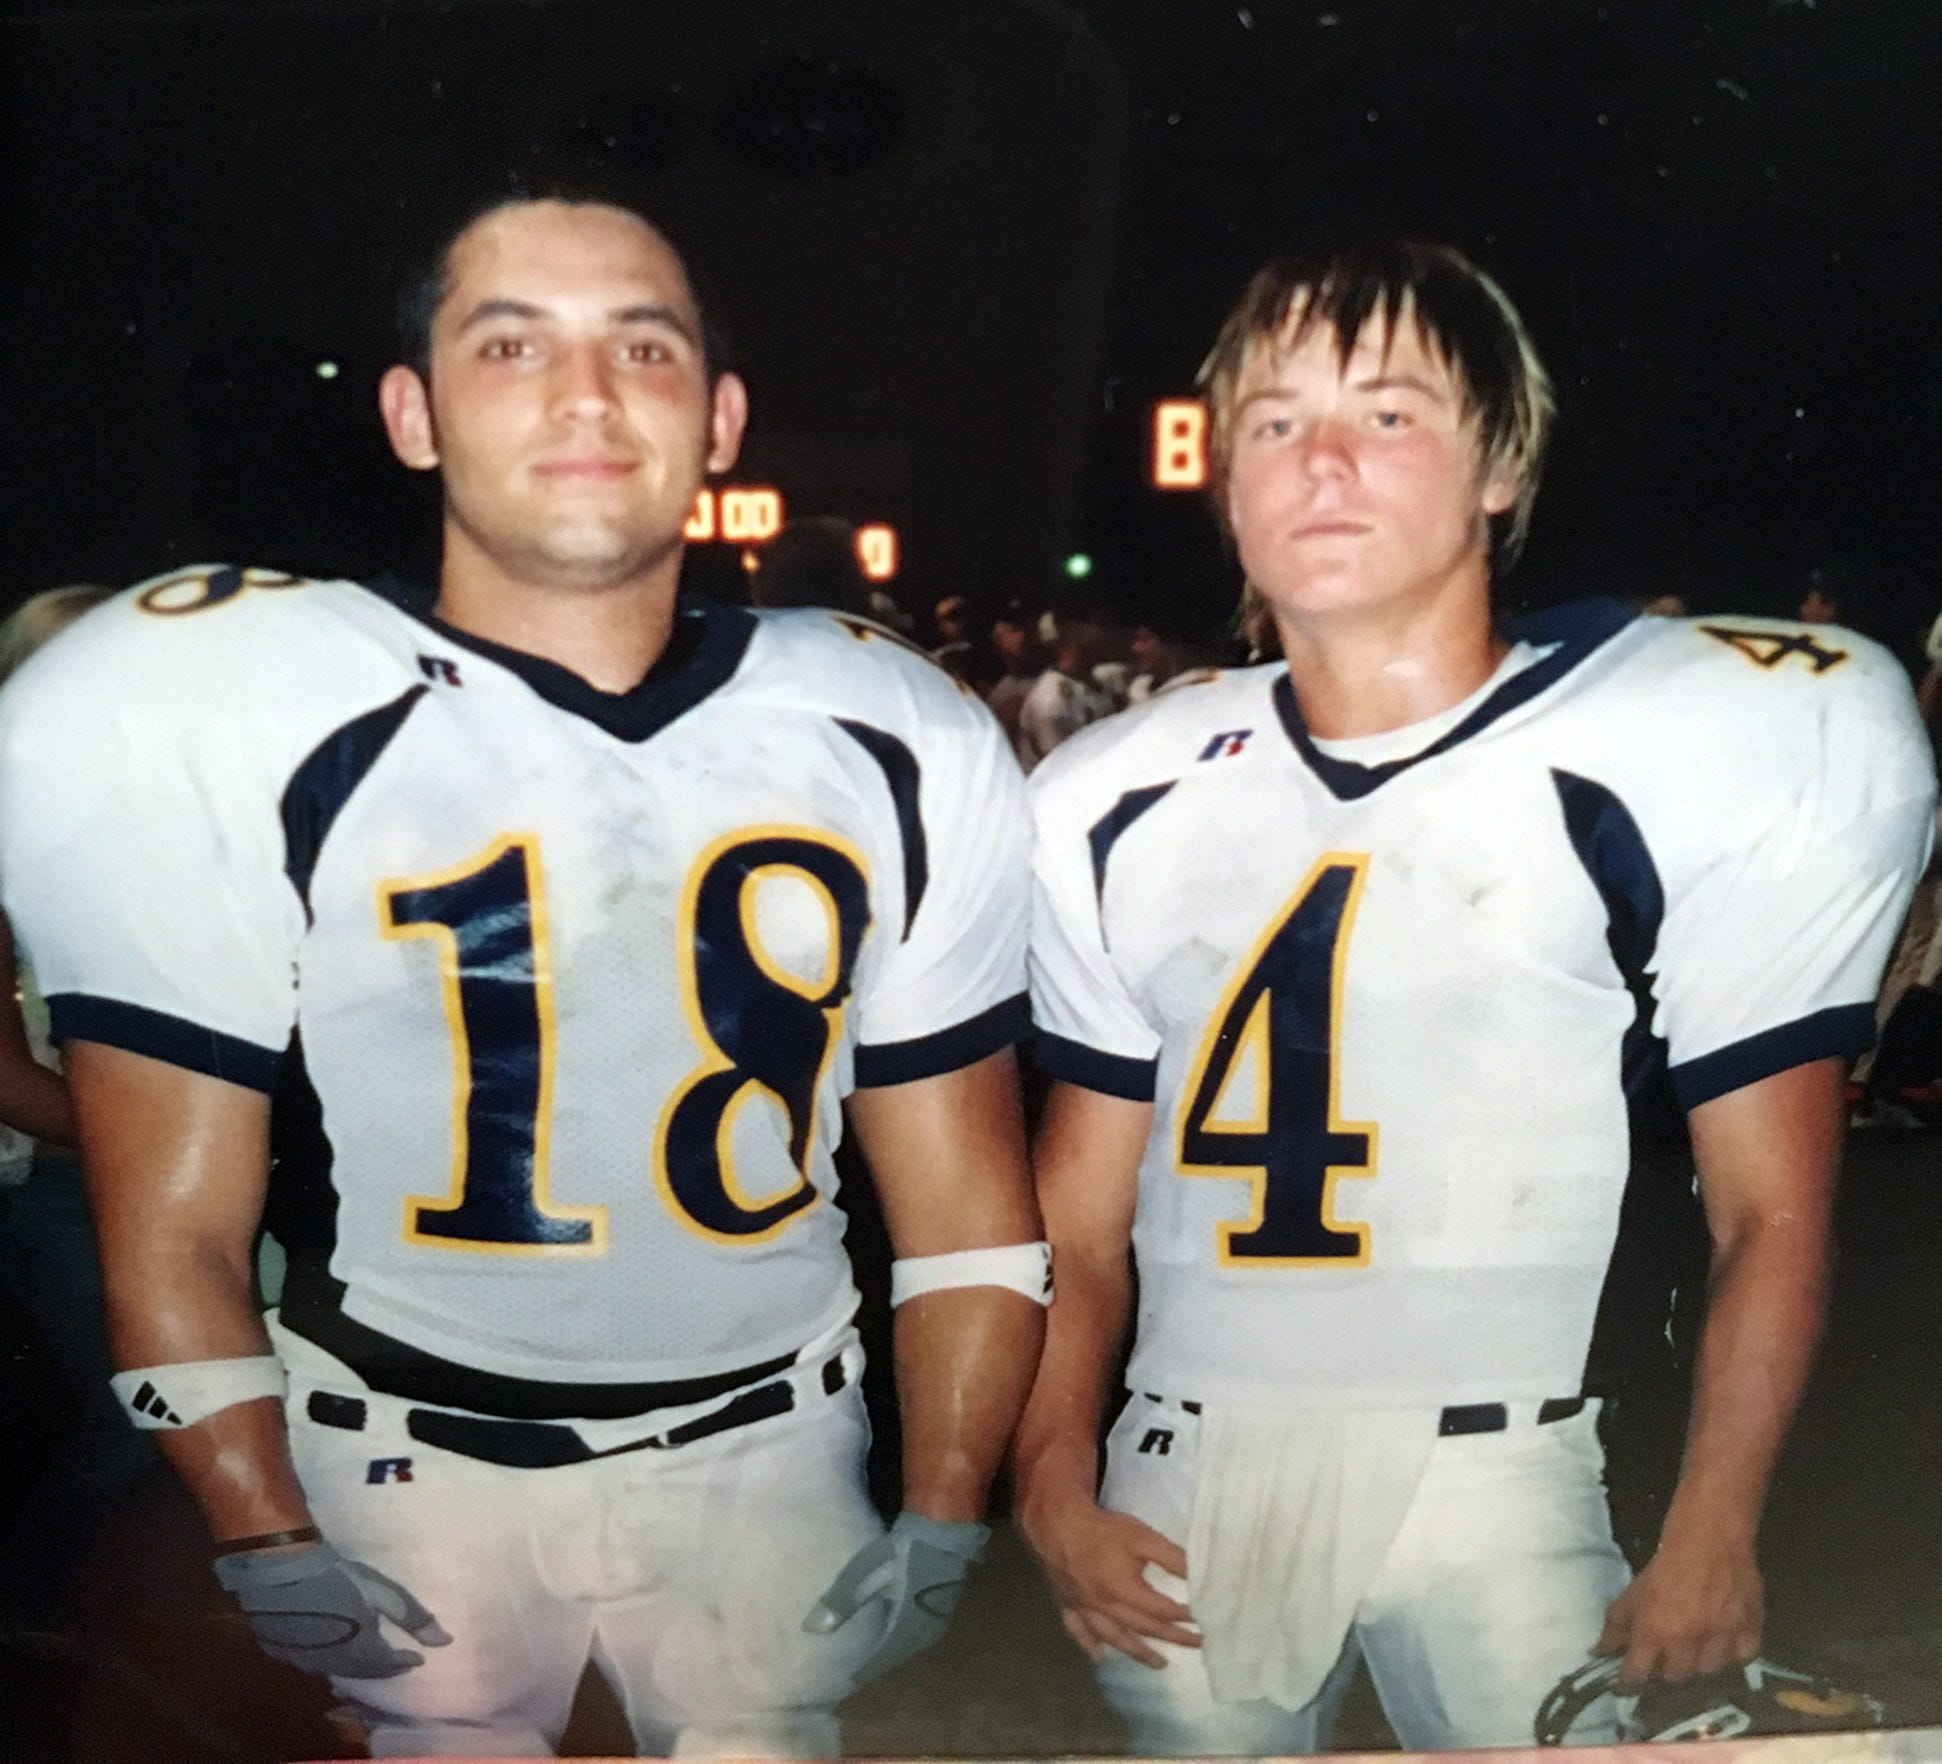 Corey Kenyon, right, who is now a coach in Cedar Park, was Jevan Snead's best friend. They are pictured together during their days in Stephenville.